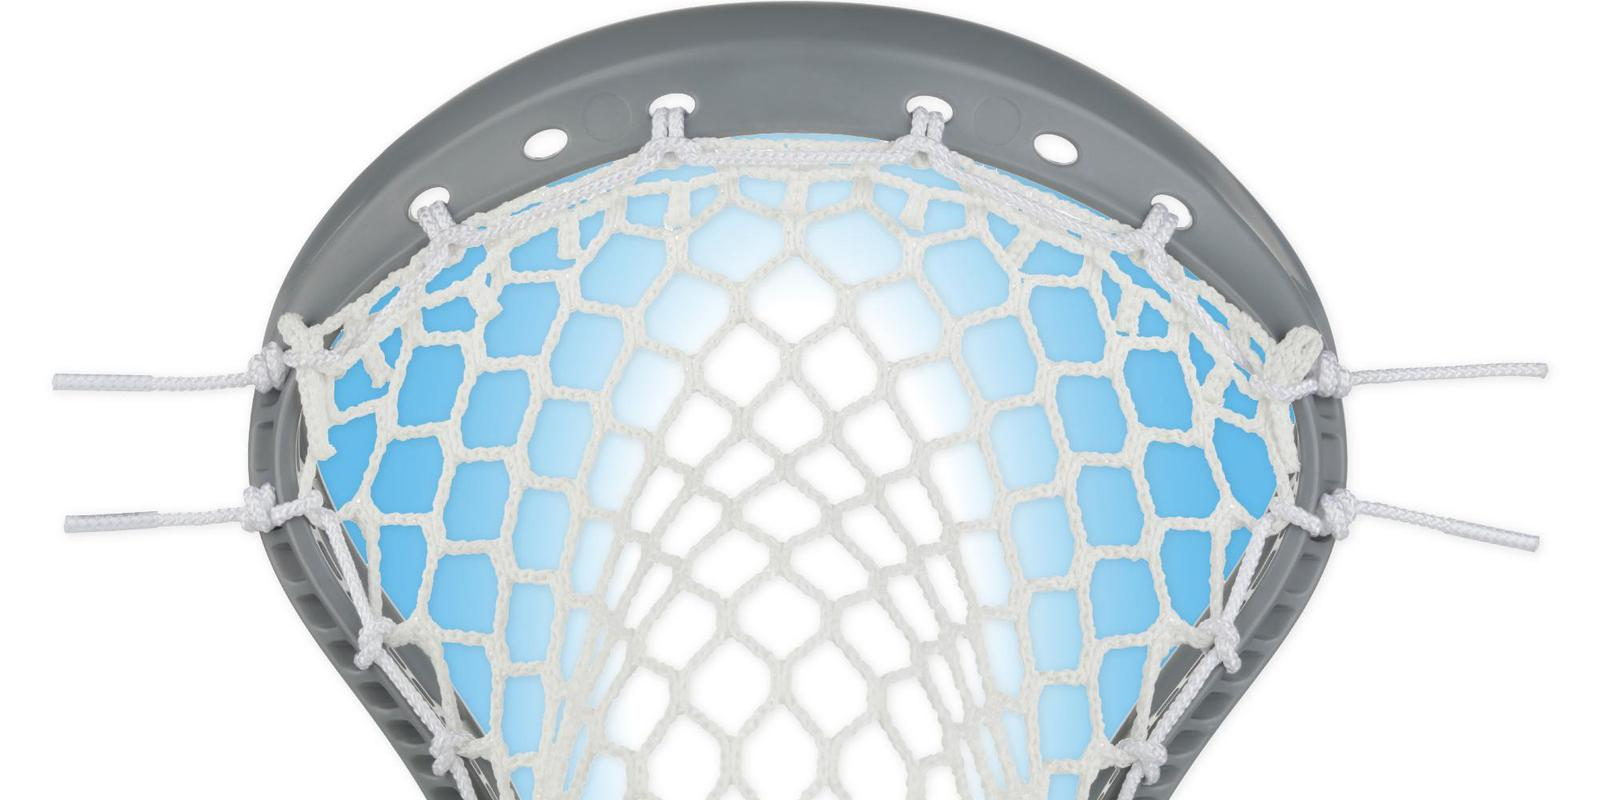 StringKing Type 4 Performance Lacrosse Mesh Pocket Channel Highlight